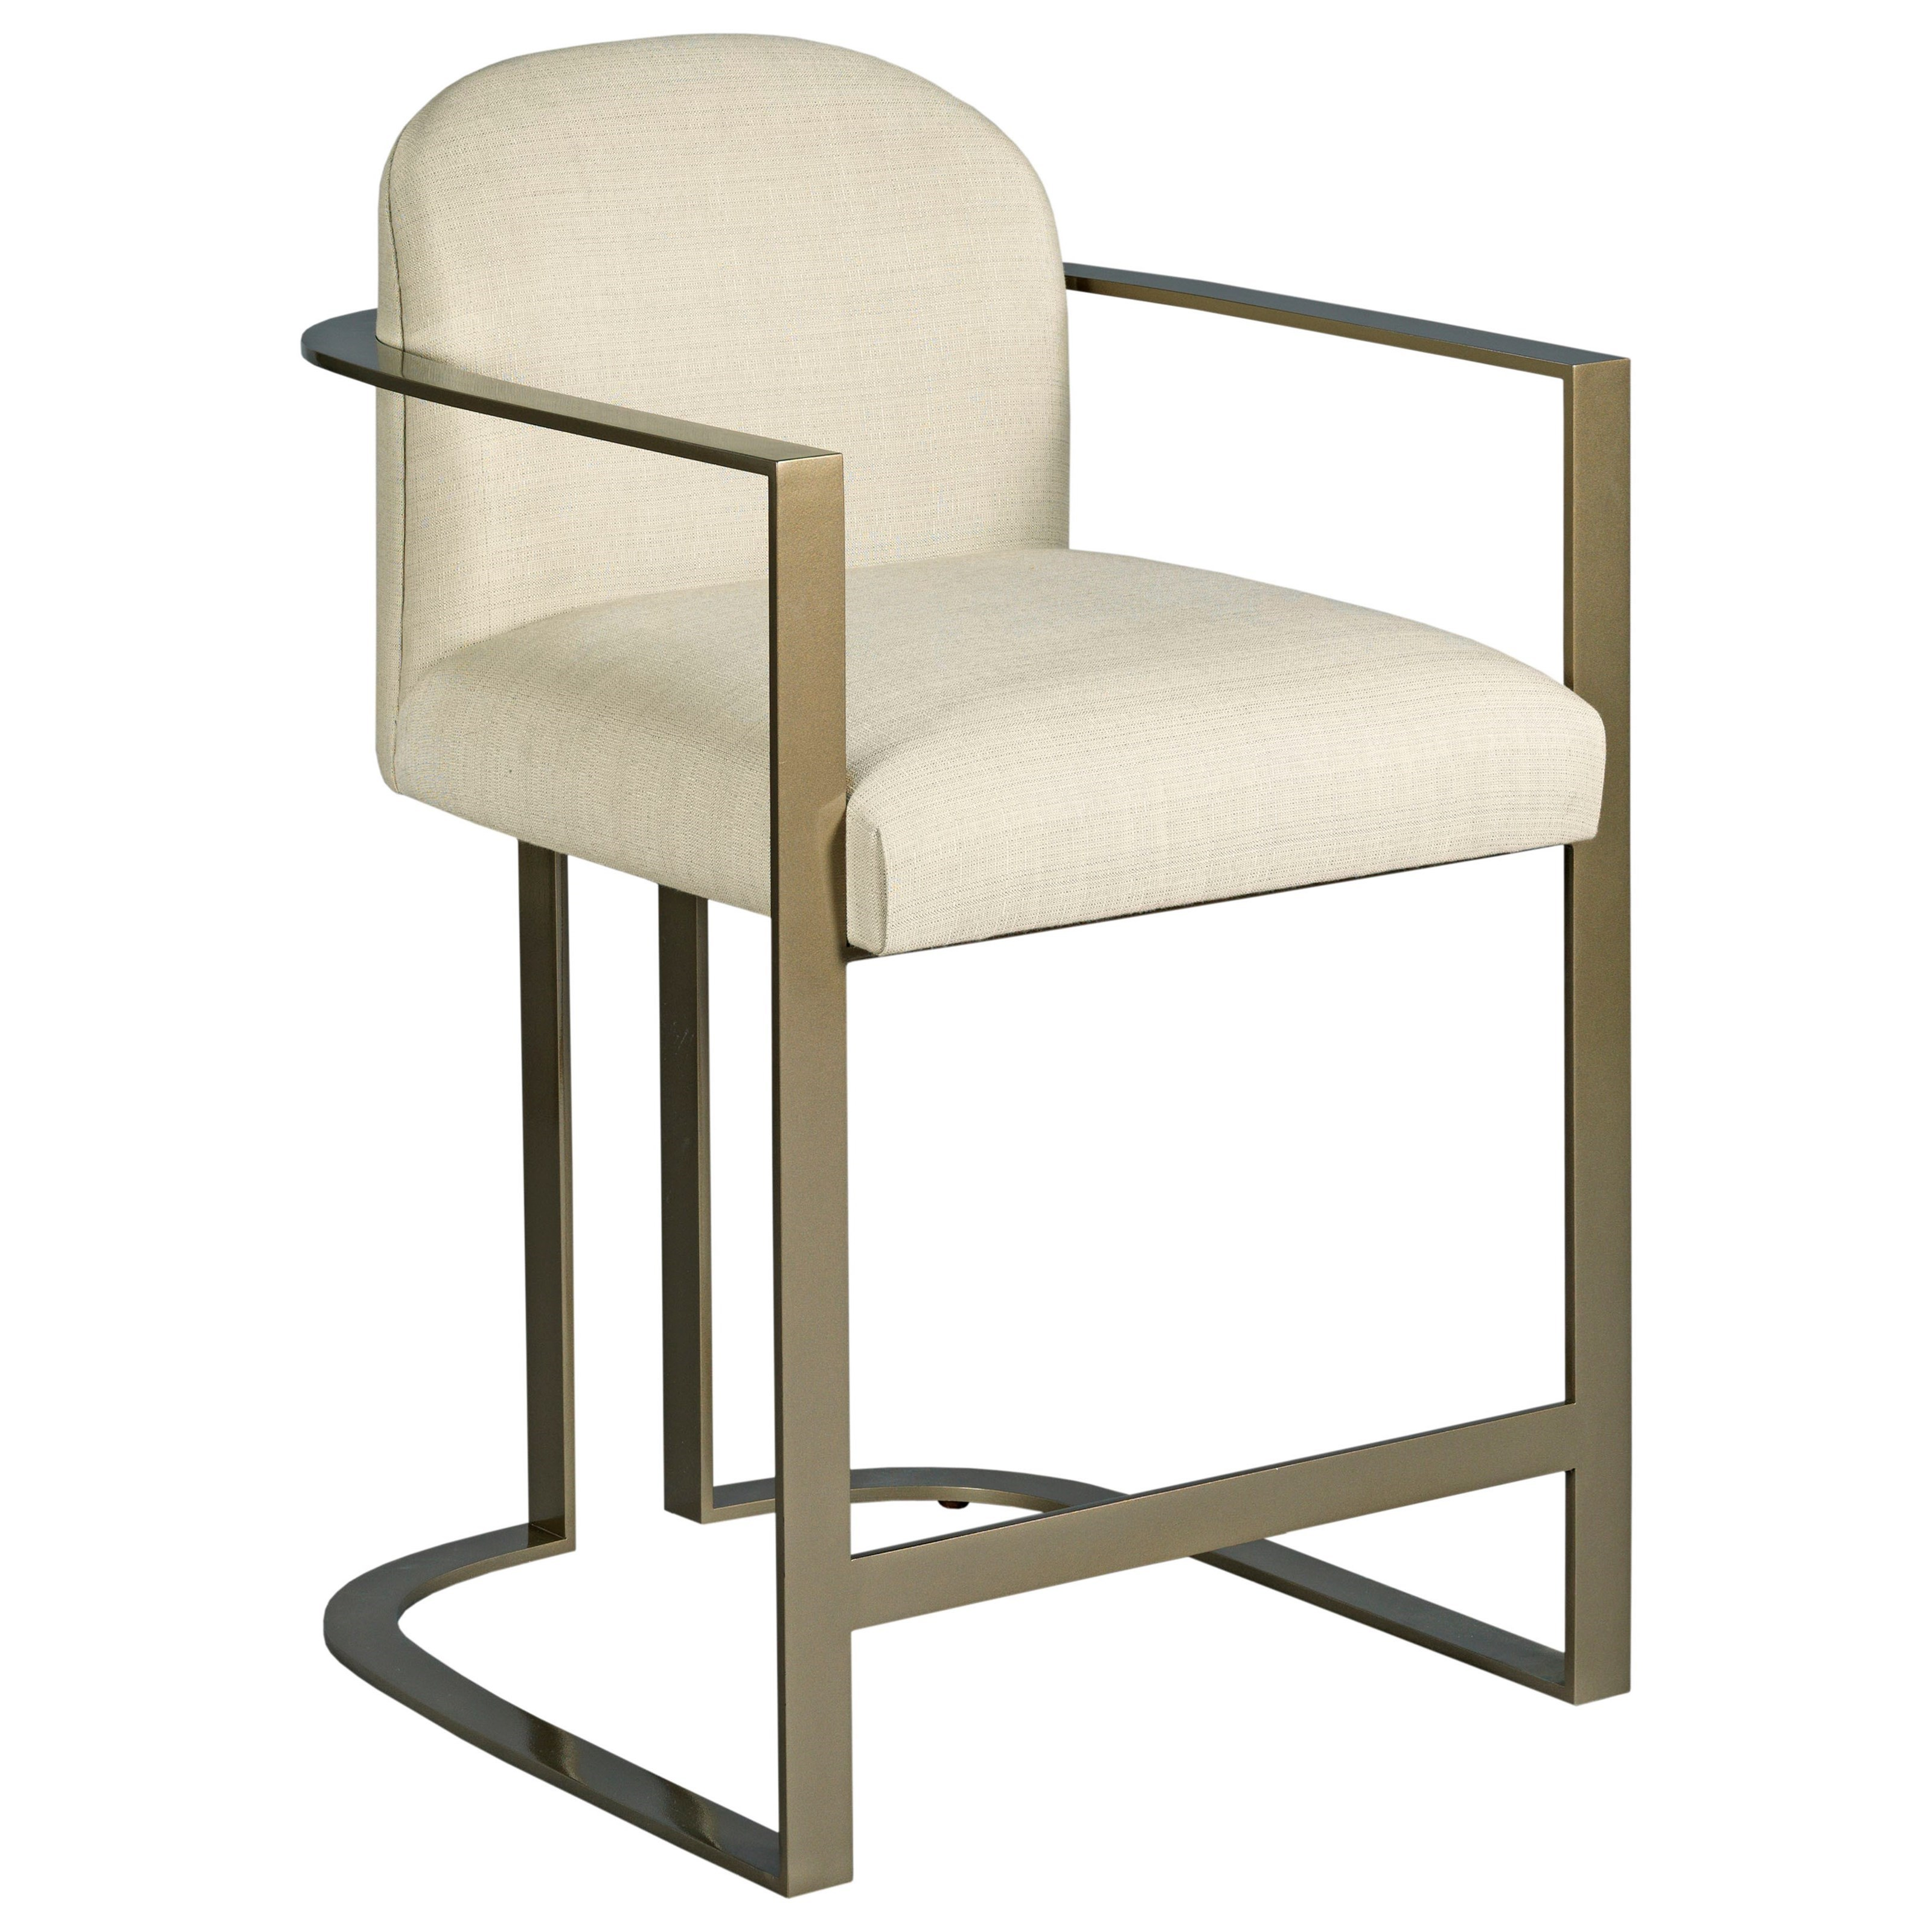 American Drew Ad Modern Classics Gates Counter Stool - Item Number: 603-690